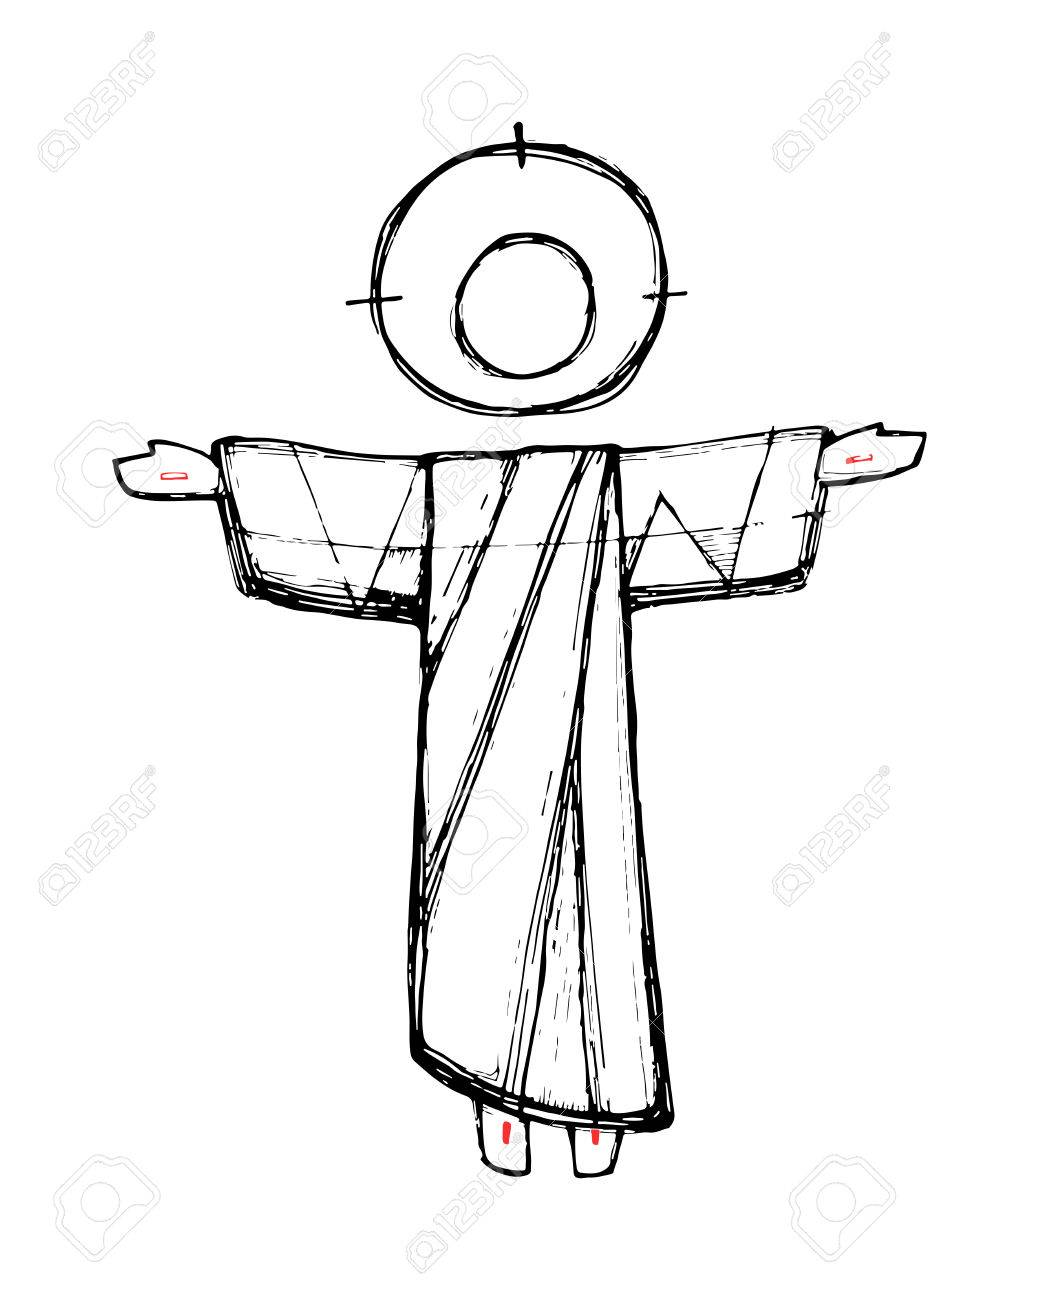 hand drawn vector illustration or drawing of jesus christ